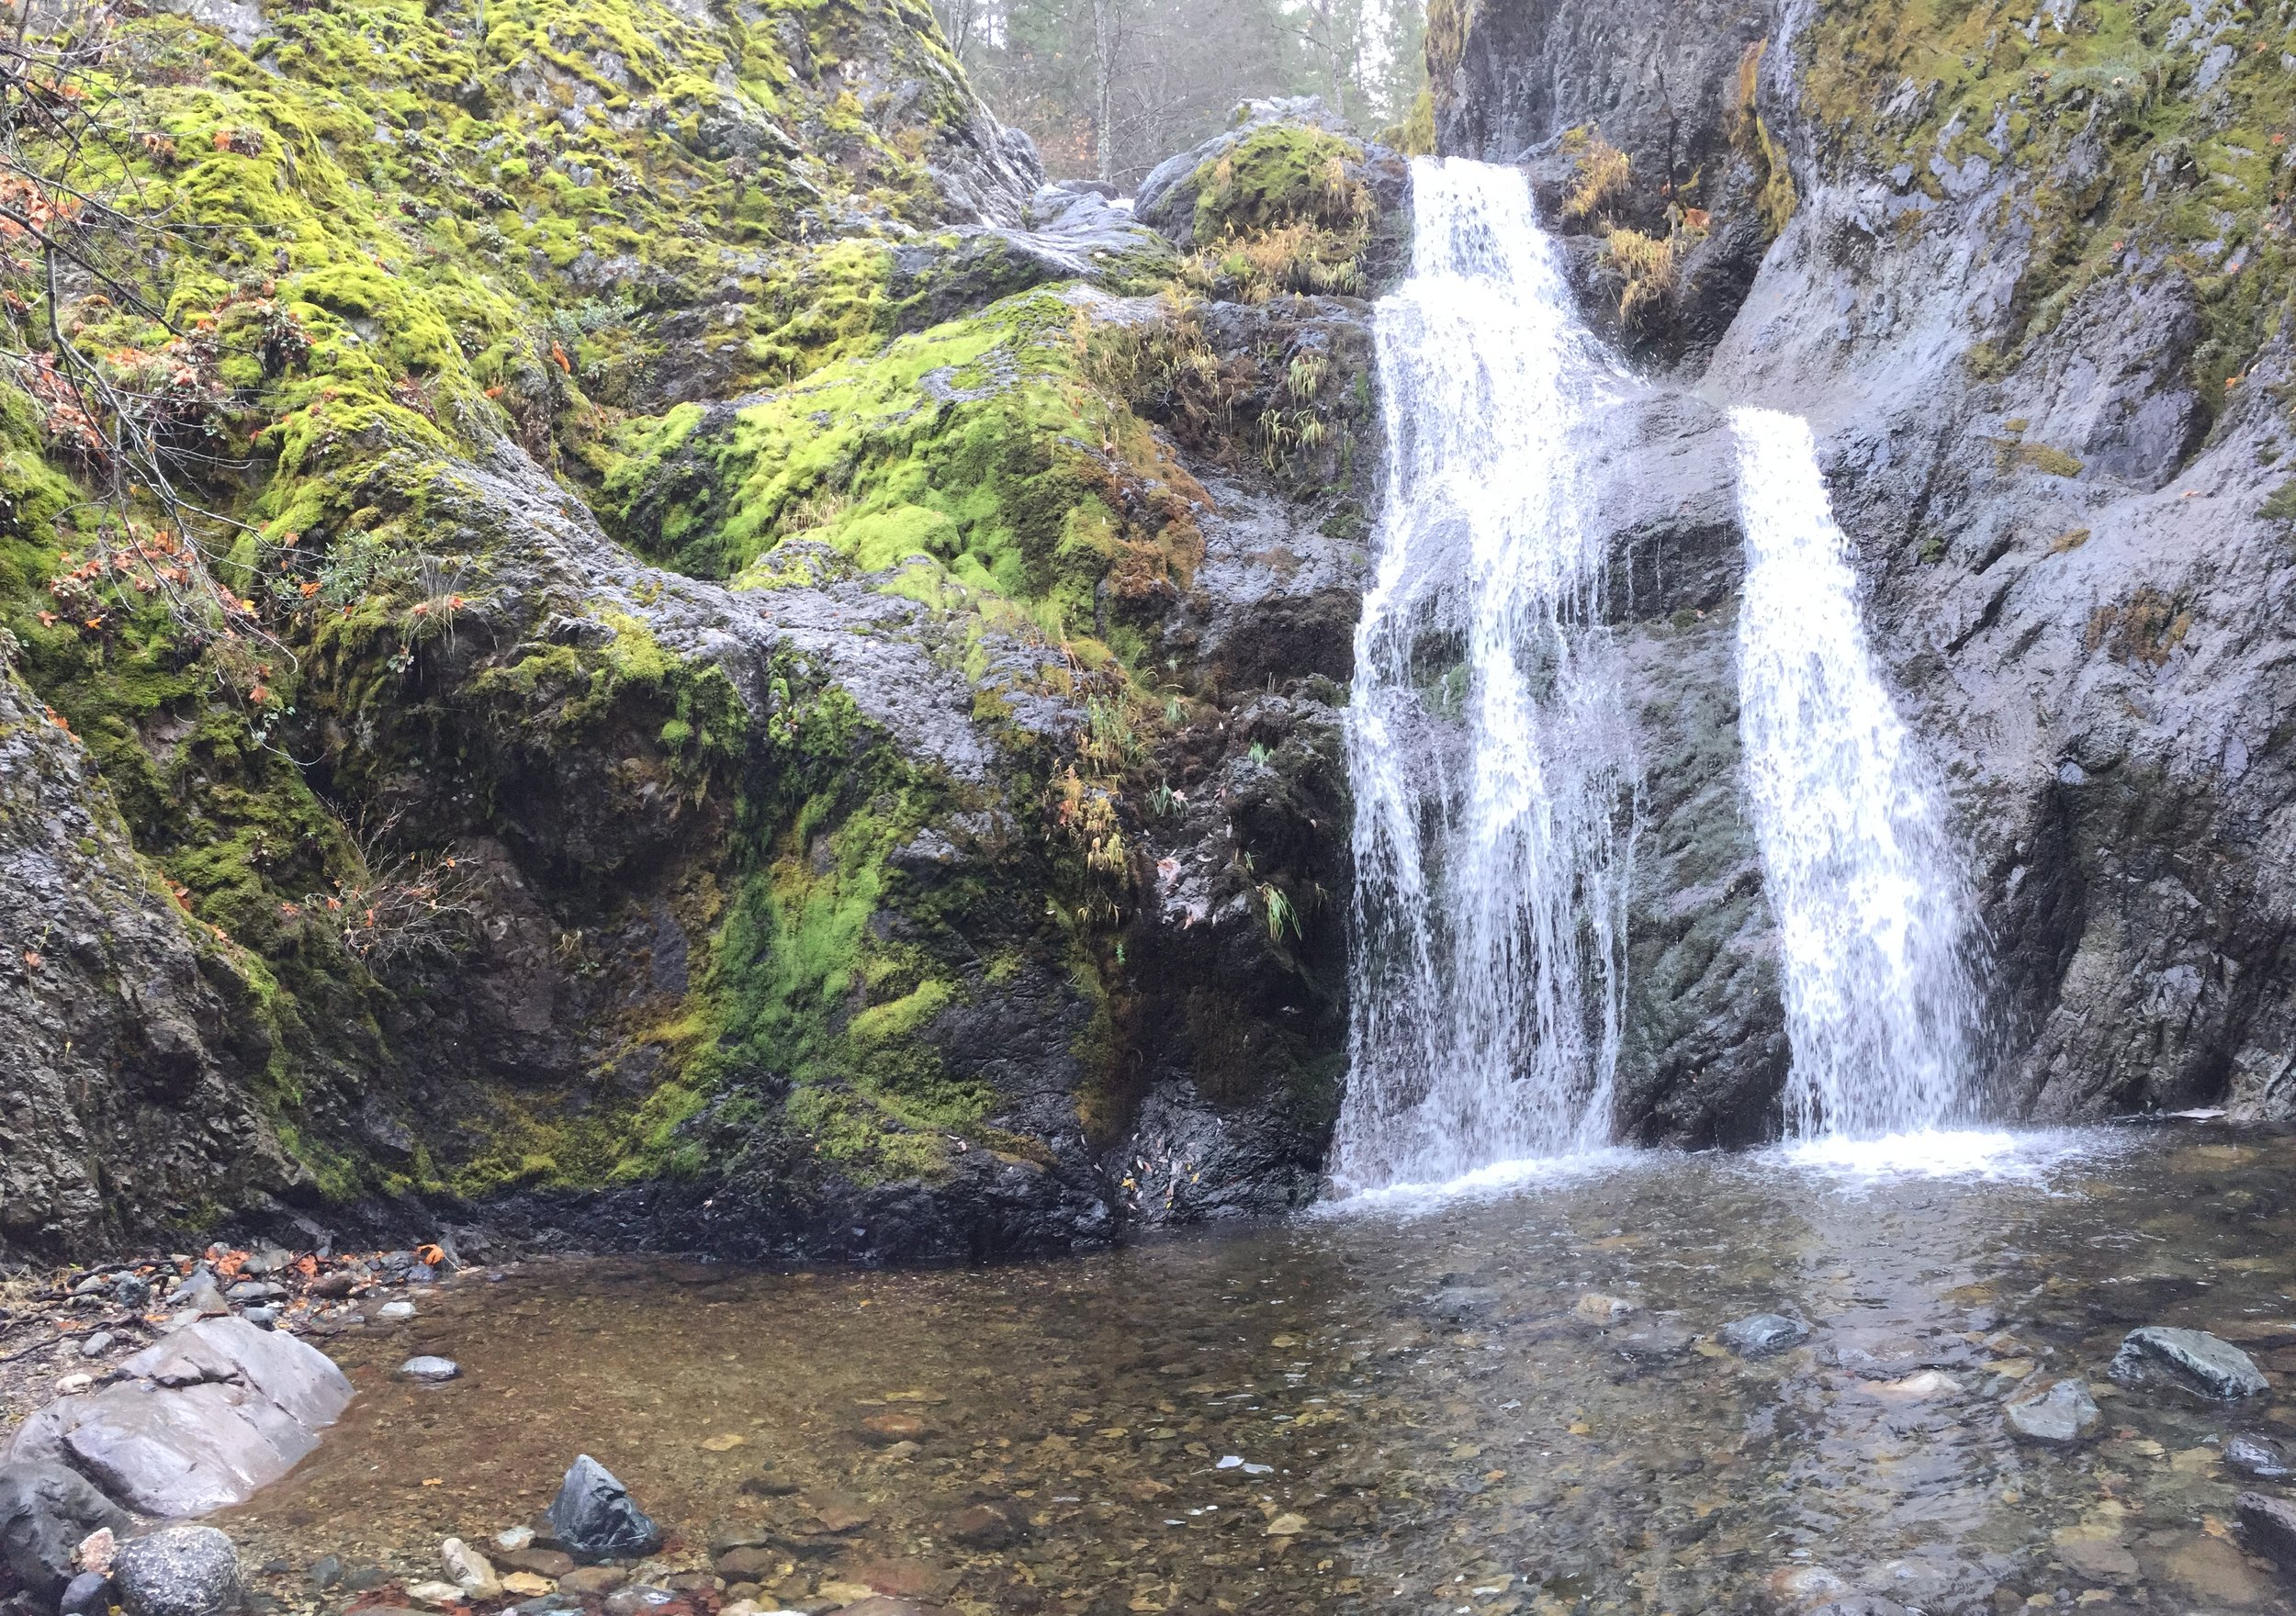 Excursion - Faery Falls with Gage and Casey